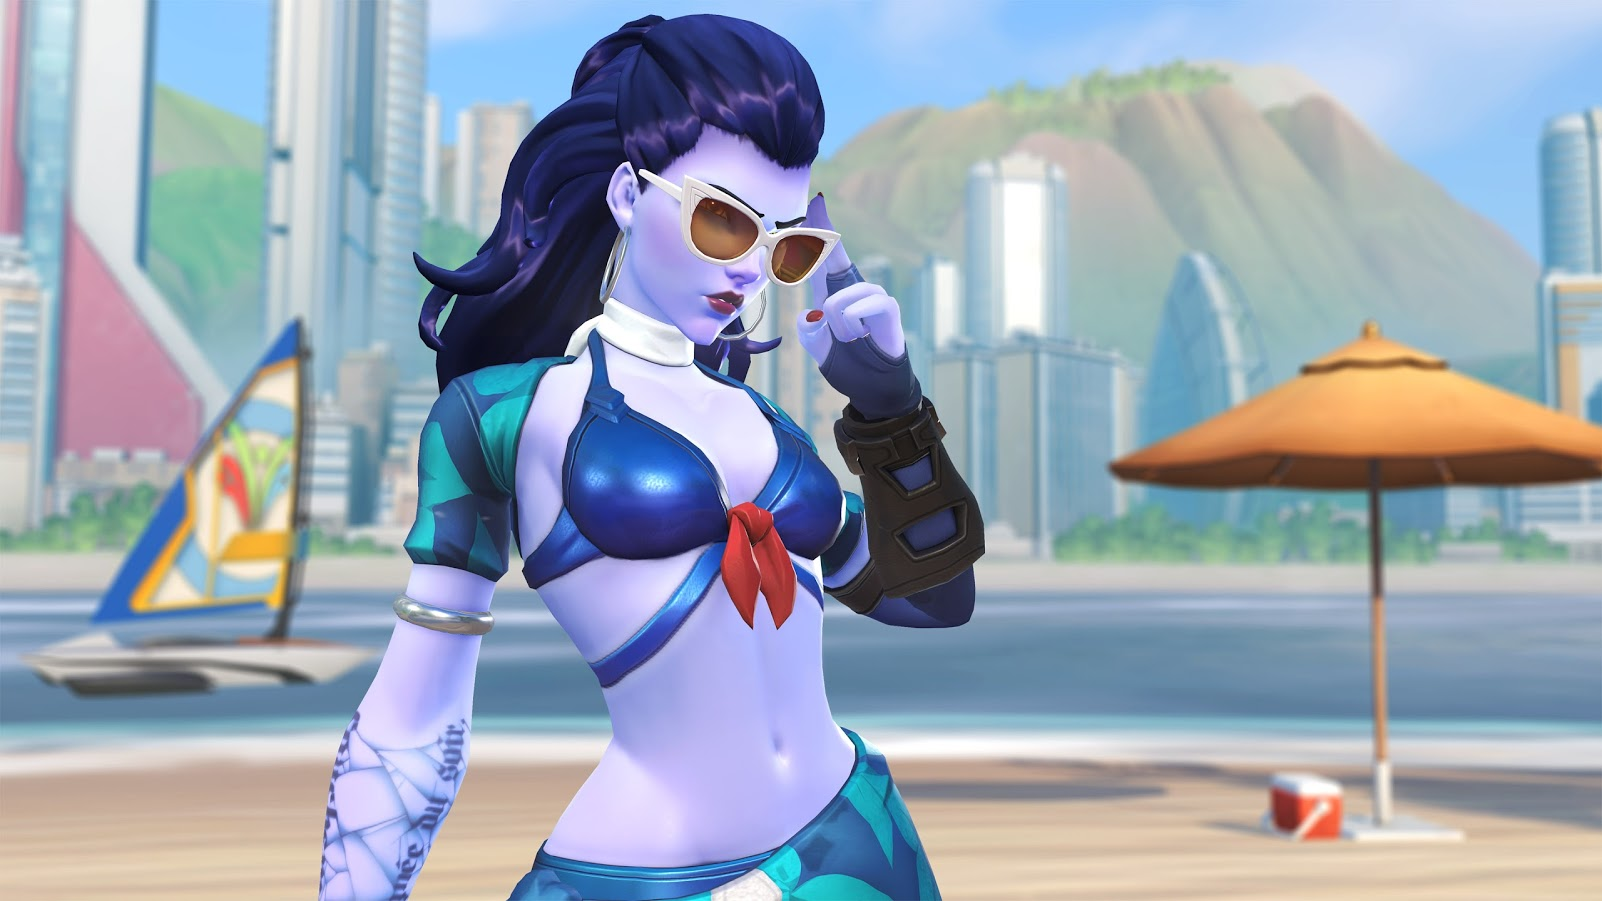 Overwatch Summer Games 2017 Widowmaker